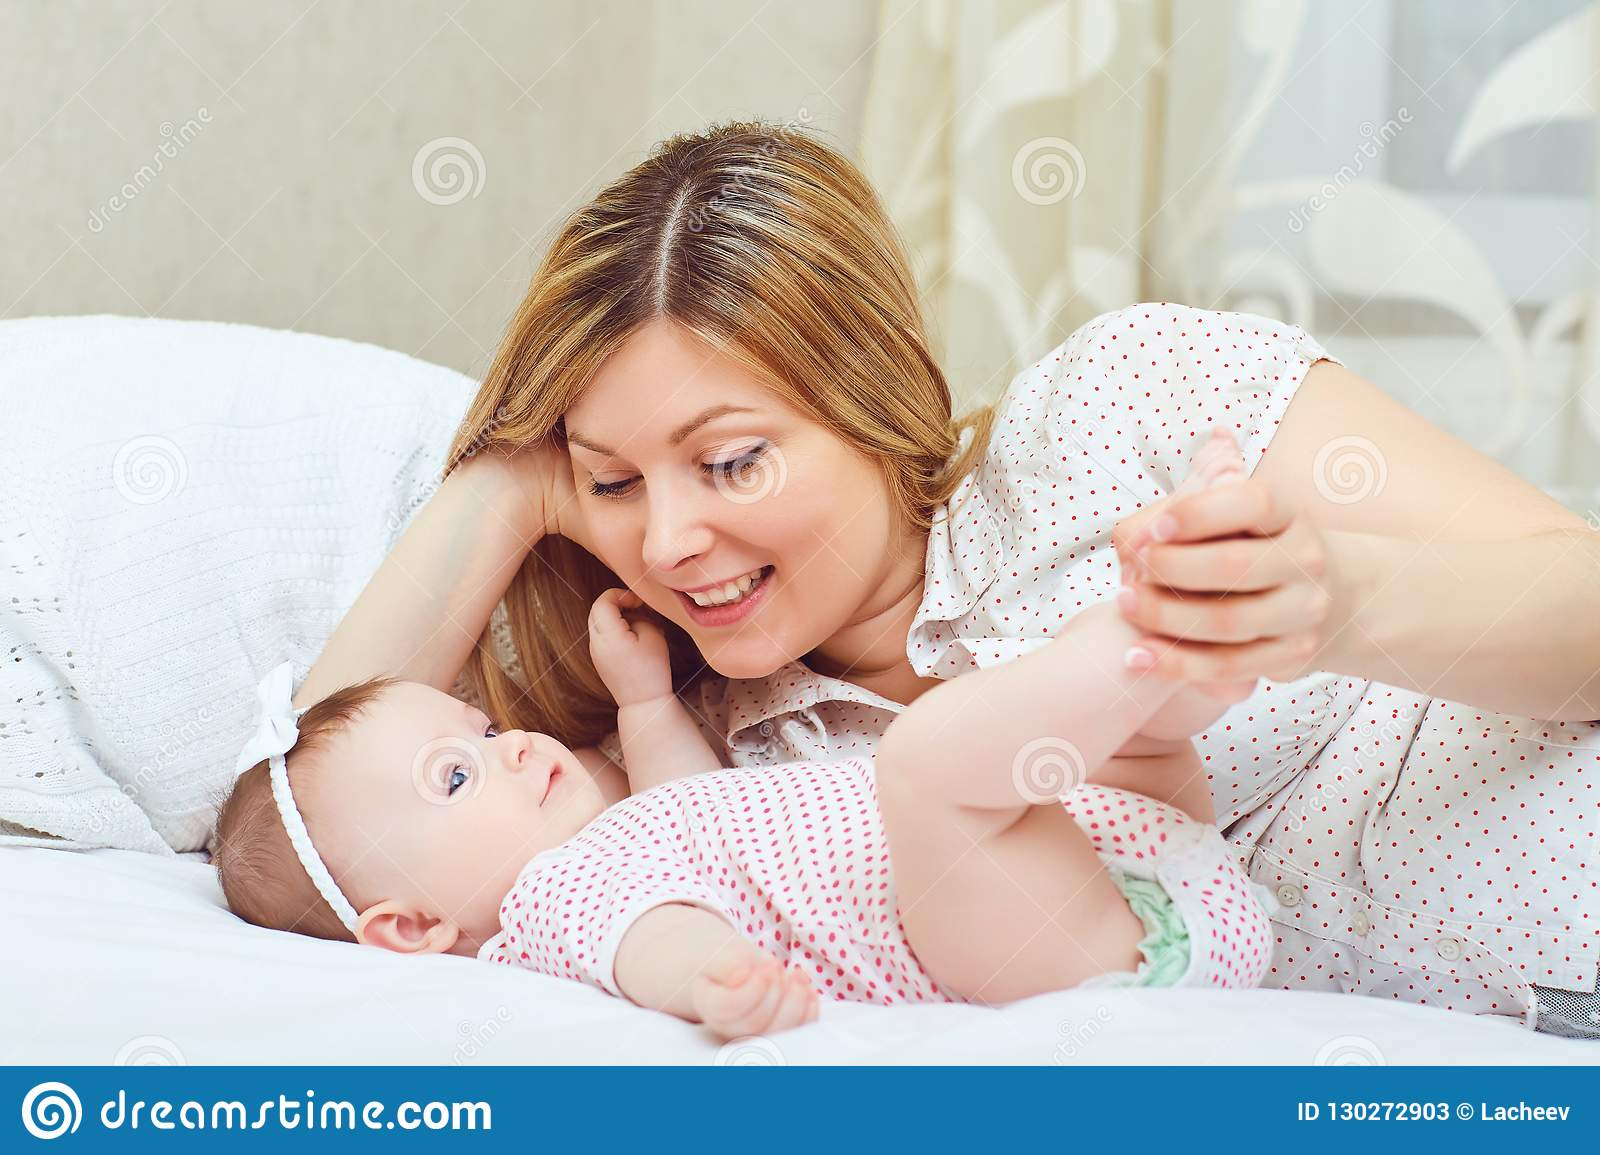 A happy mother with a baby plays on a bed.